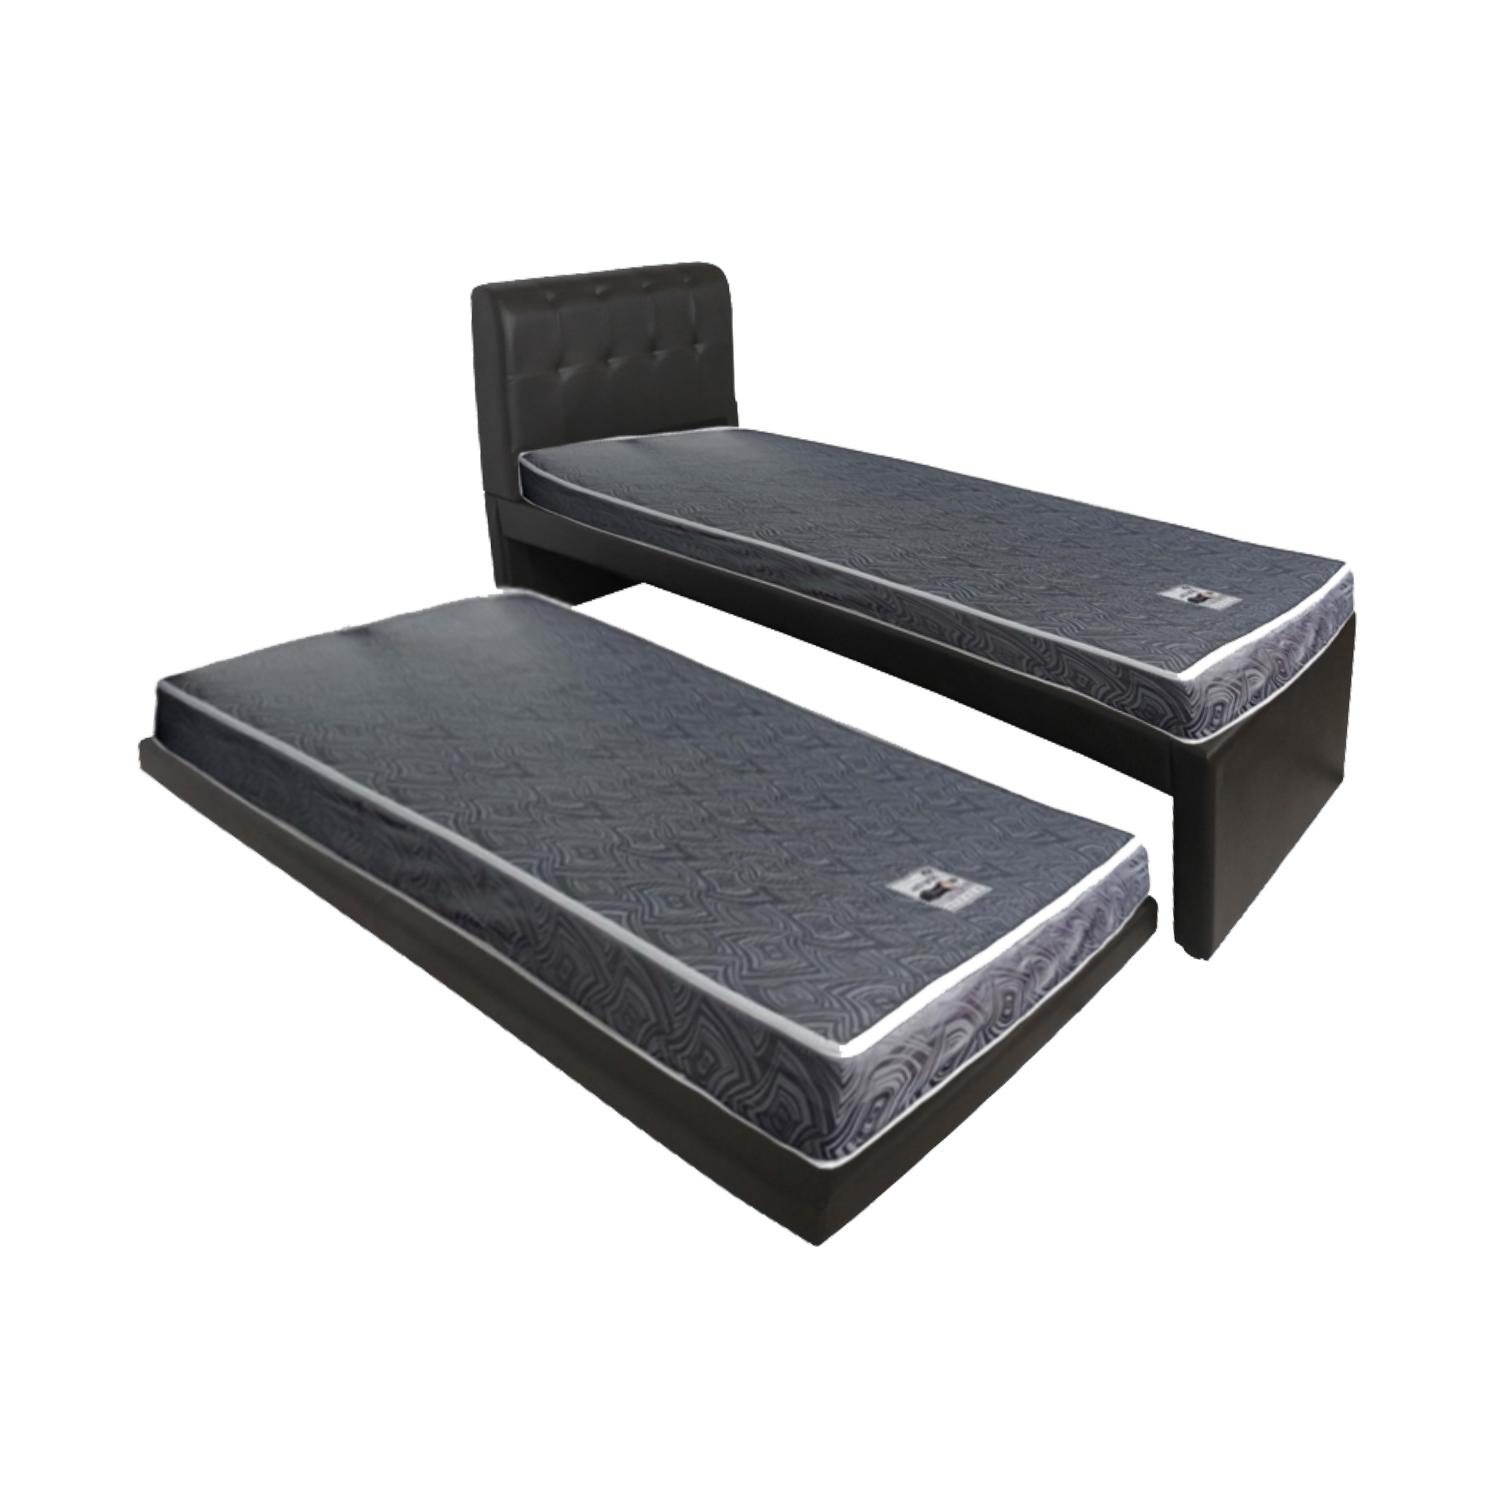 NICOLA 3 in 1 Bedframe with mattress